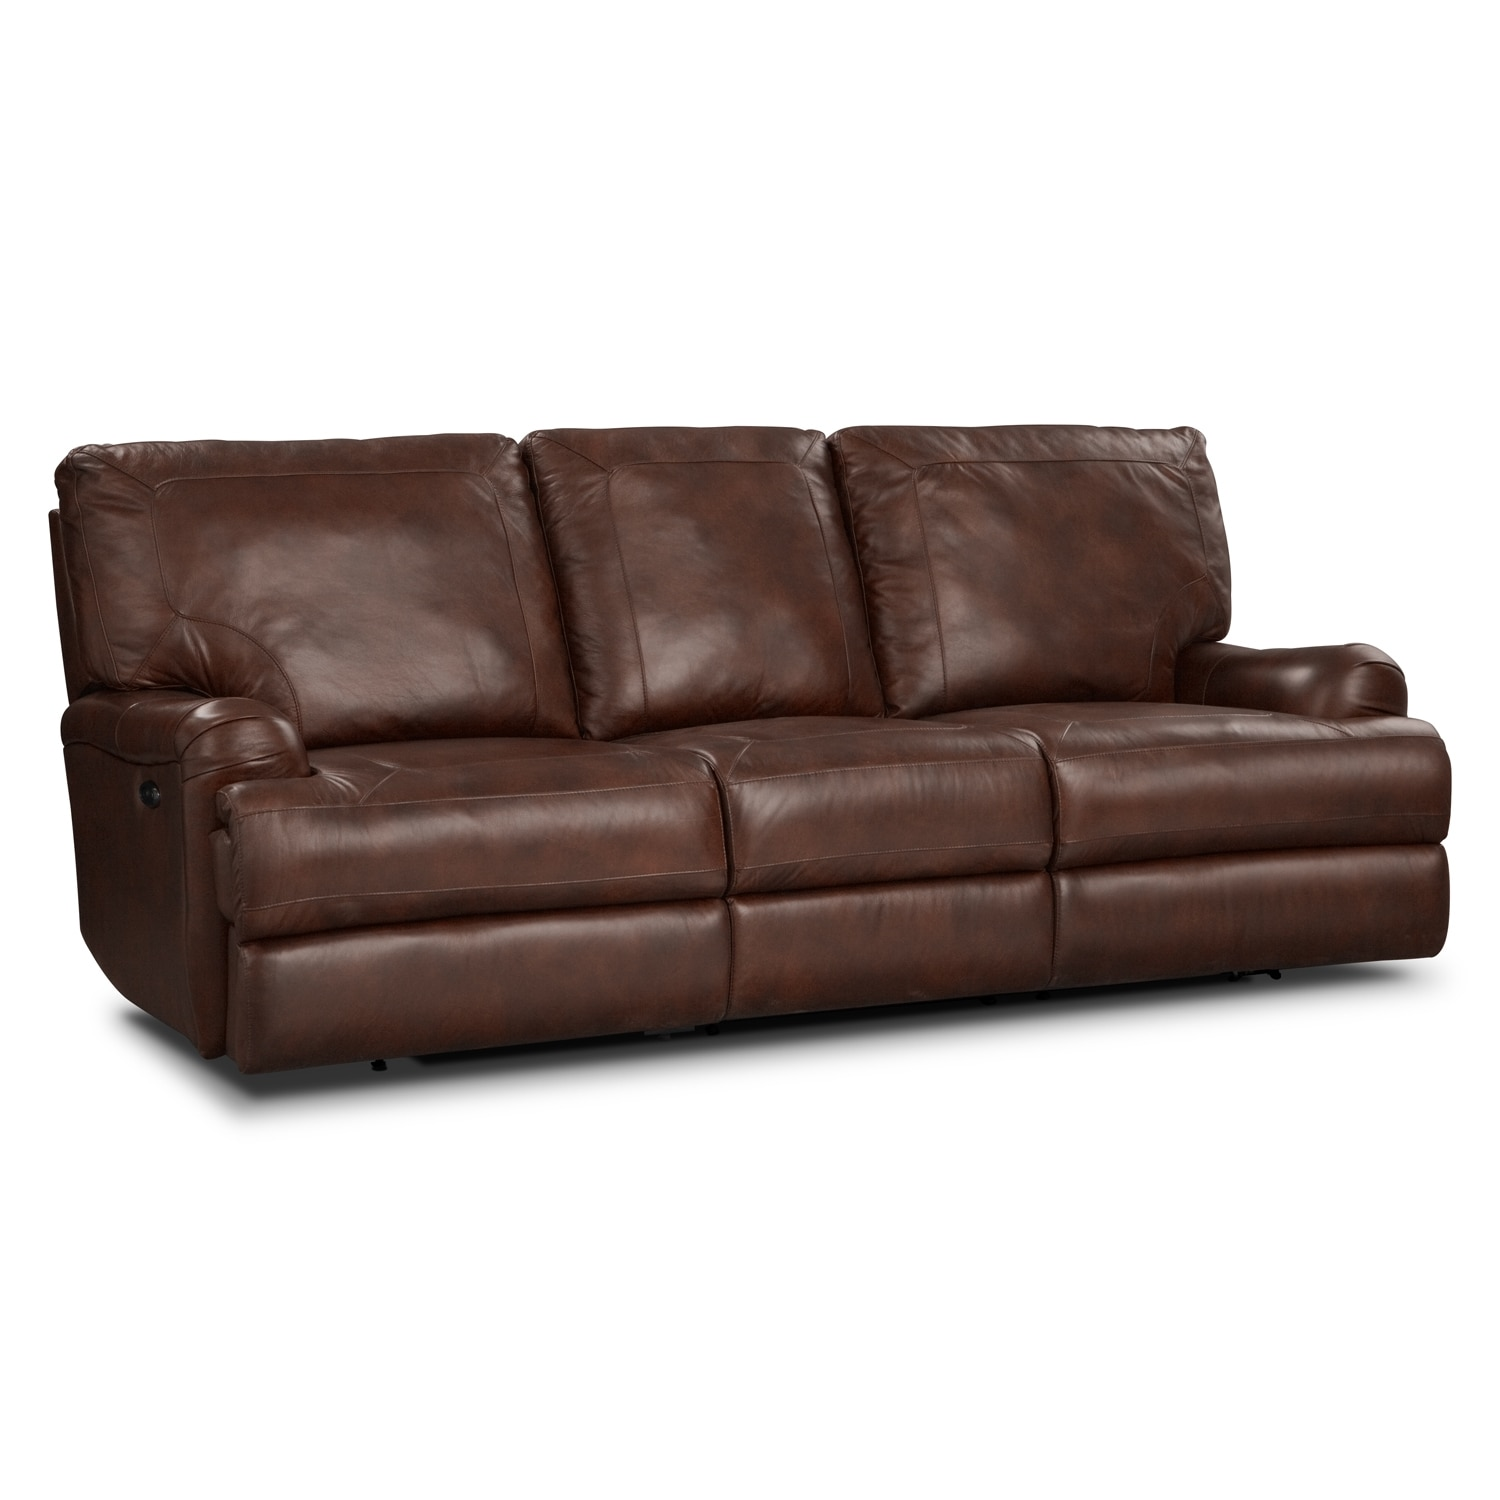 Kingsway leather power reclining sofa value city furniture Leather reclining loveseat